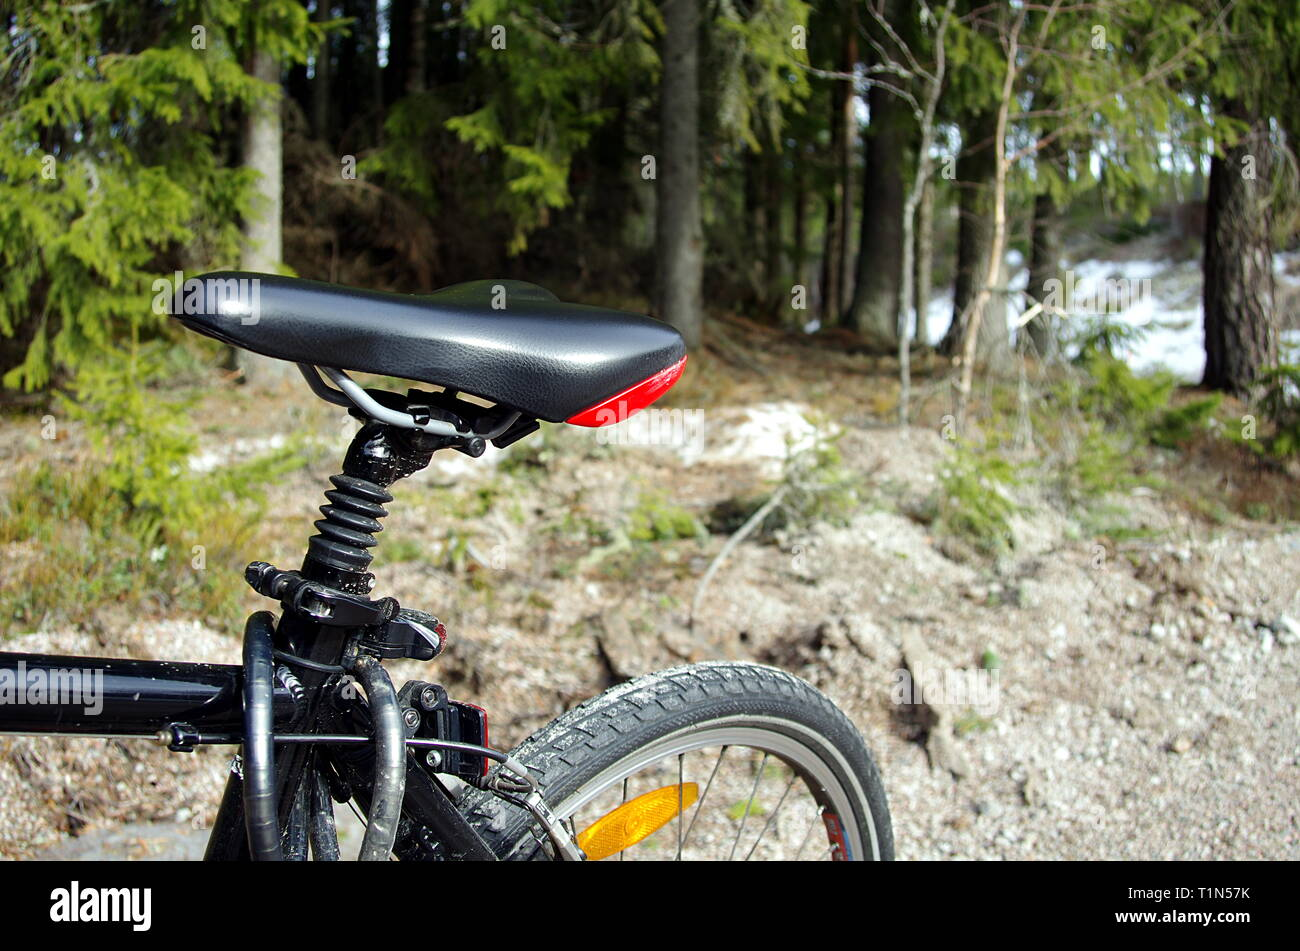 Bicycle close up in the forest - Stock Image